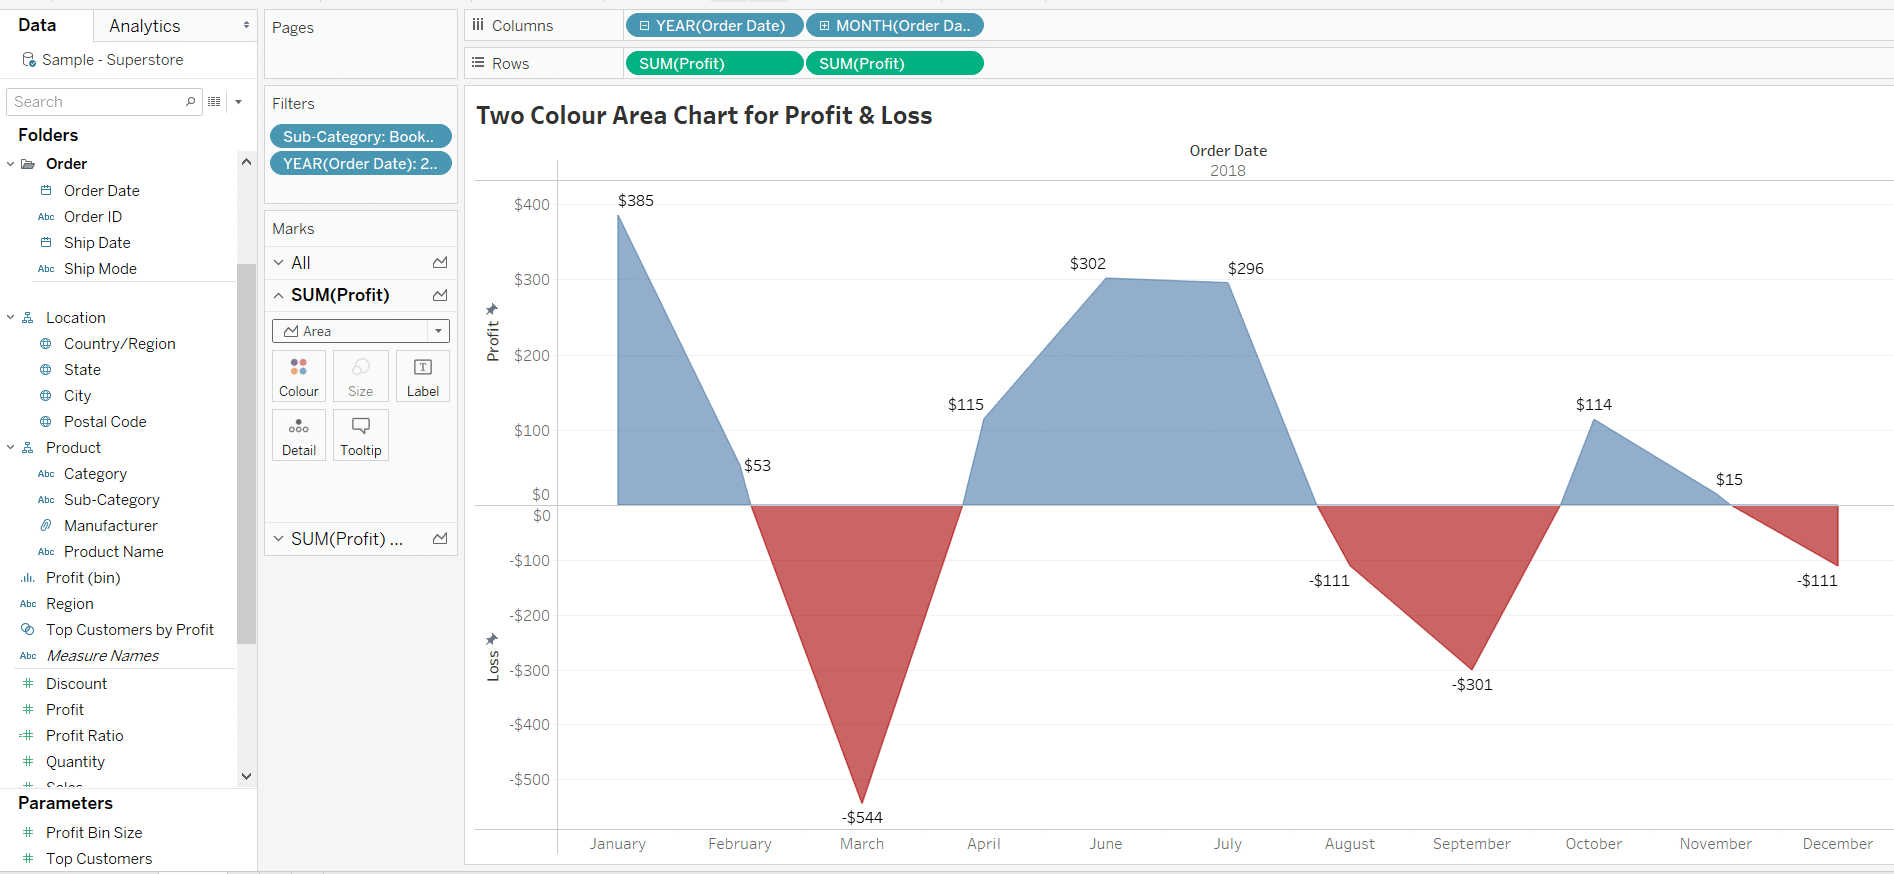 How to build a Two Colour Area Chart in Tableau